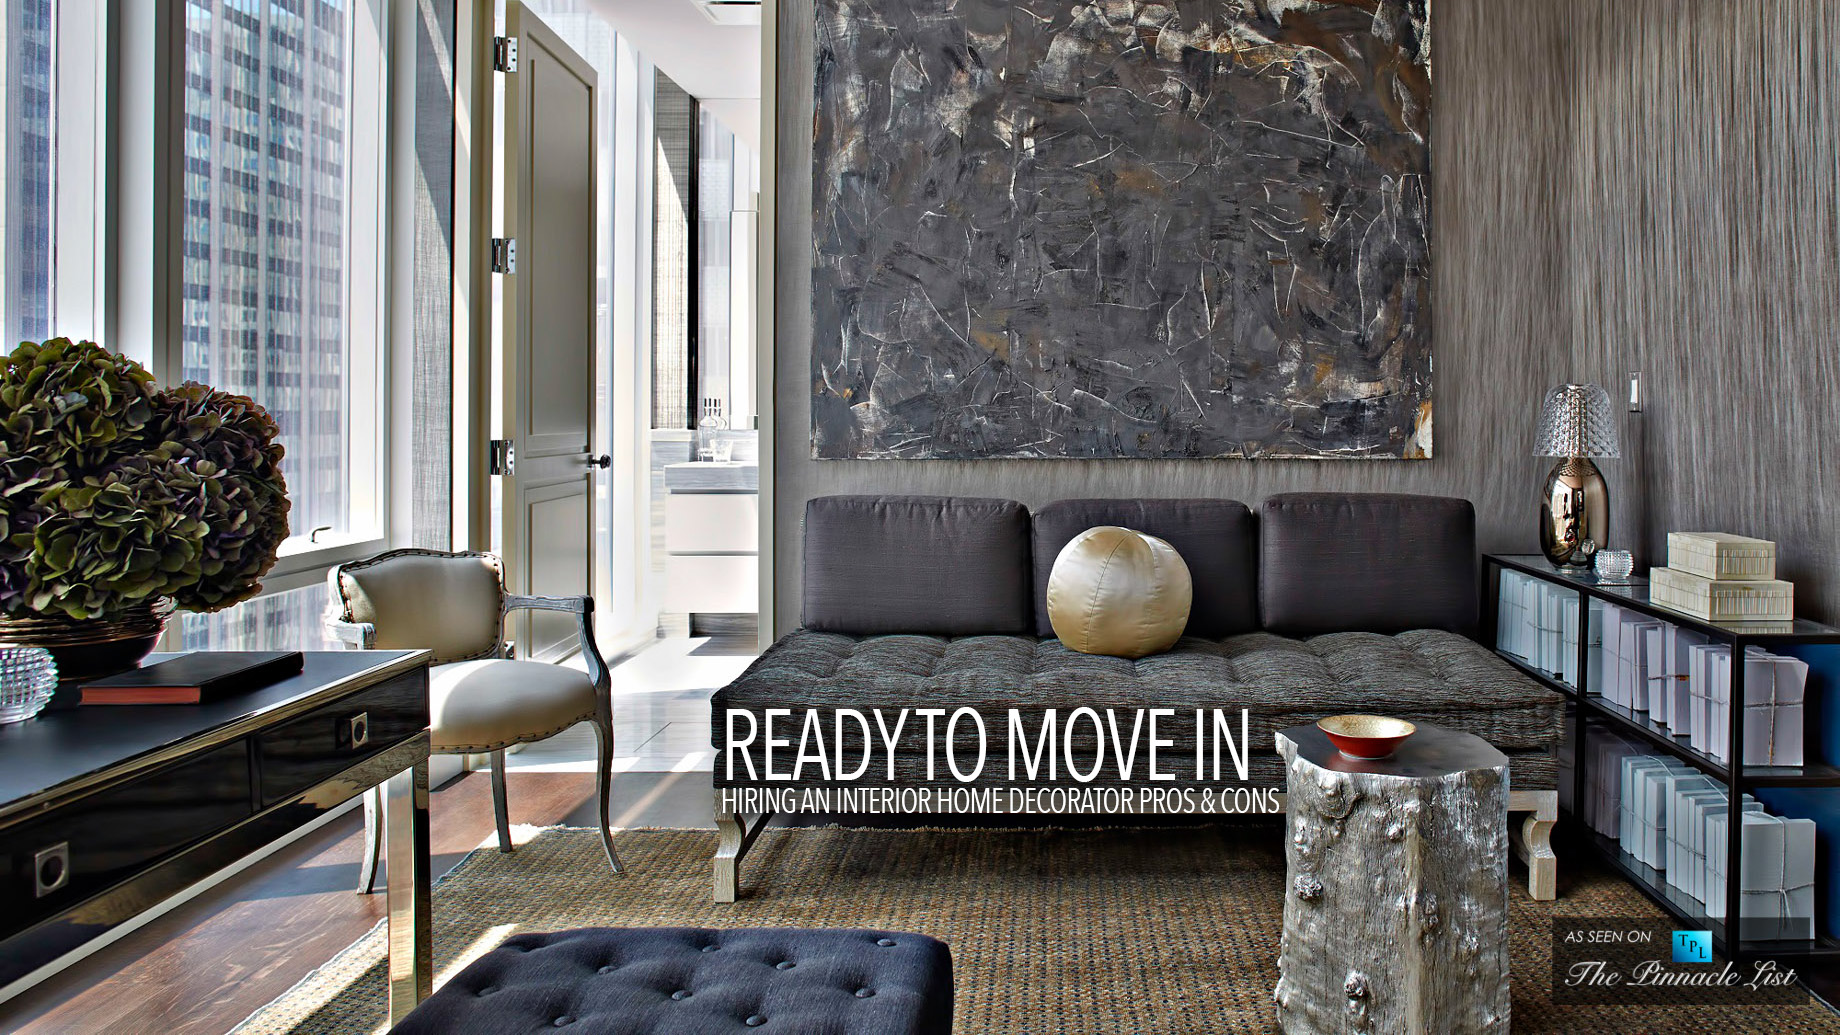 Ready to Move In - Hiring an Interior Home Decorator Pros and Cons